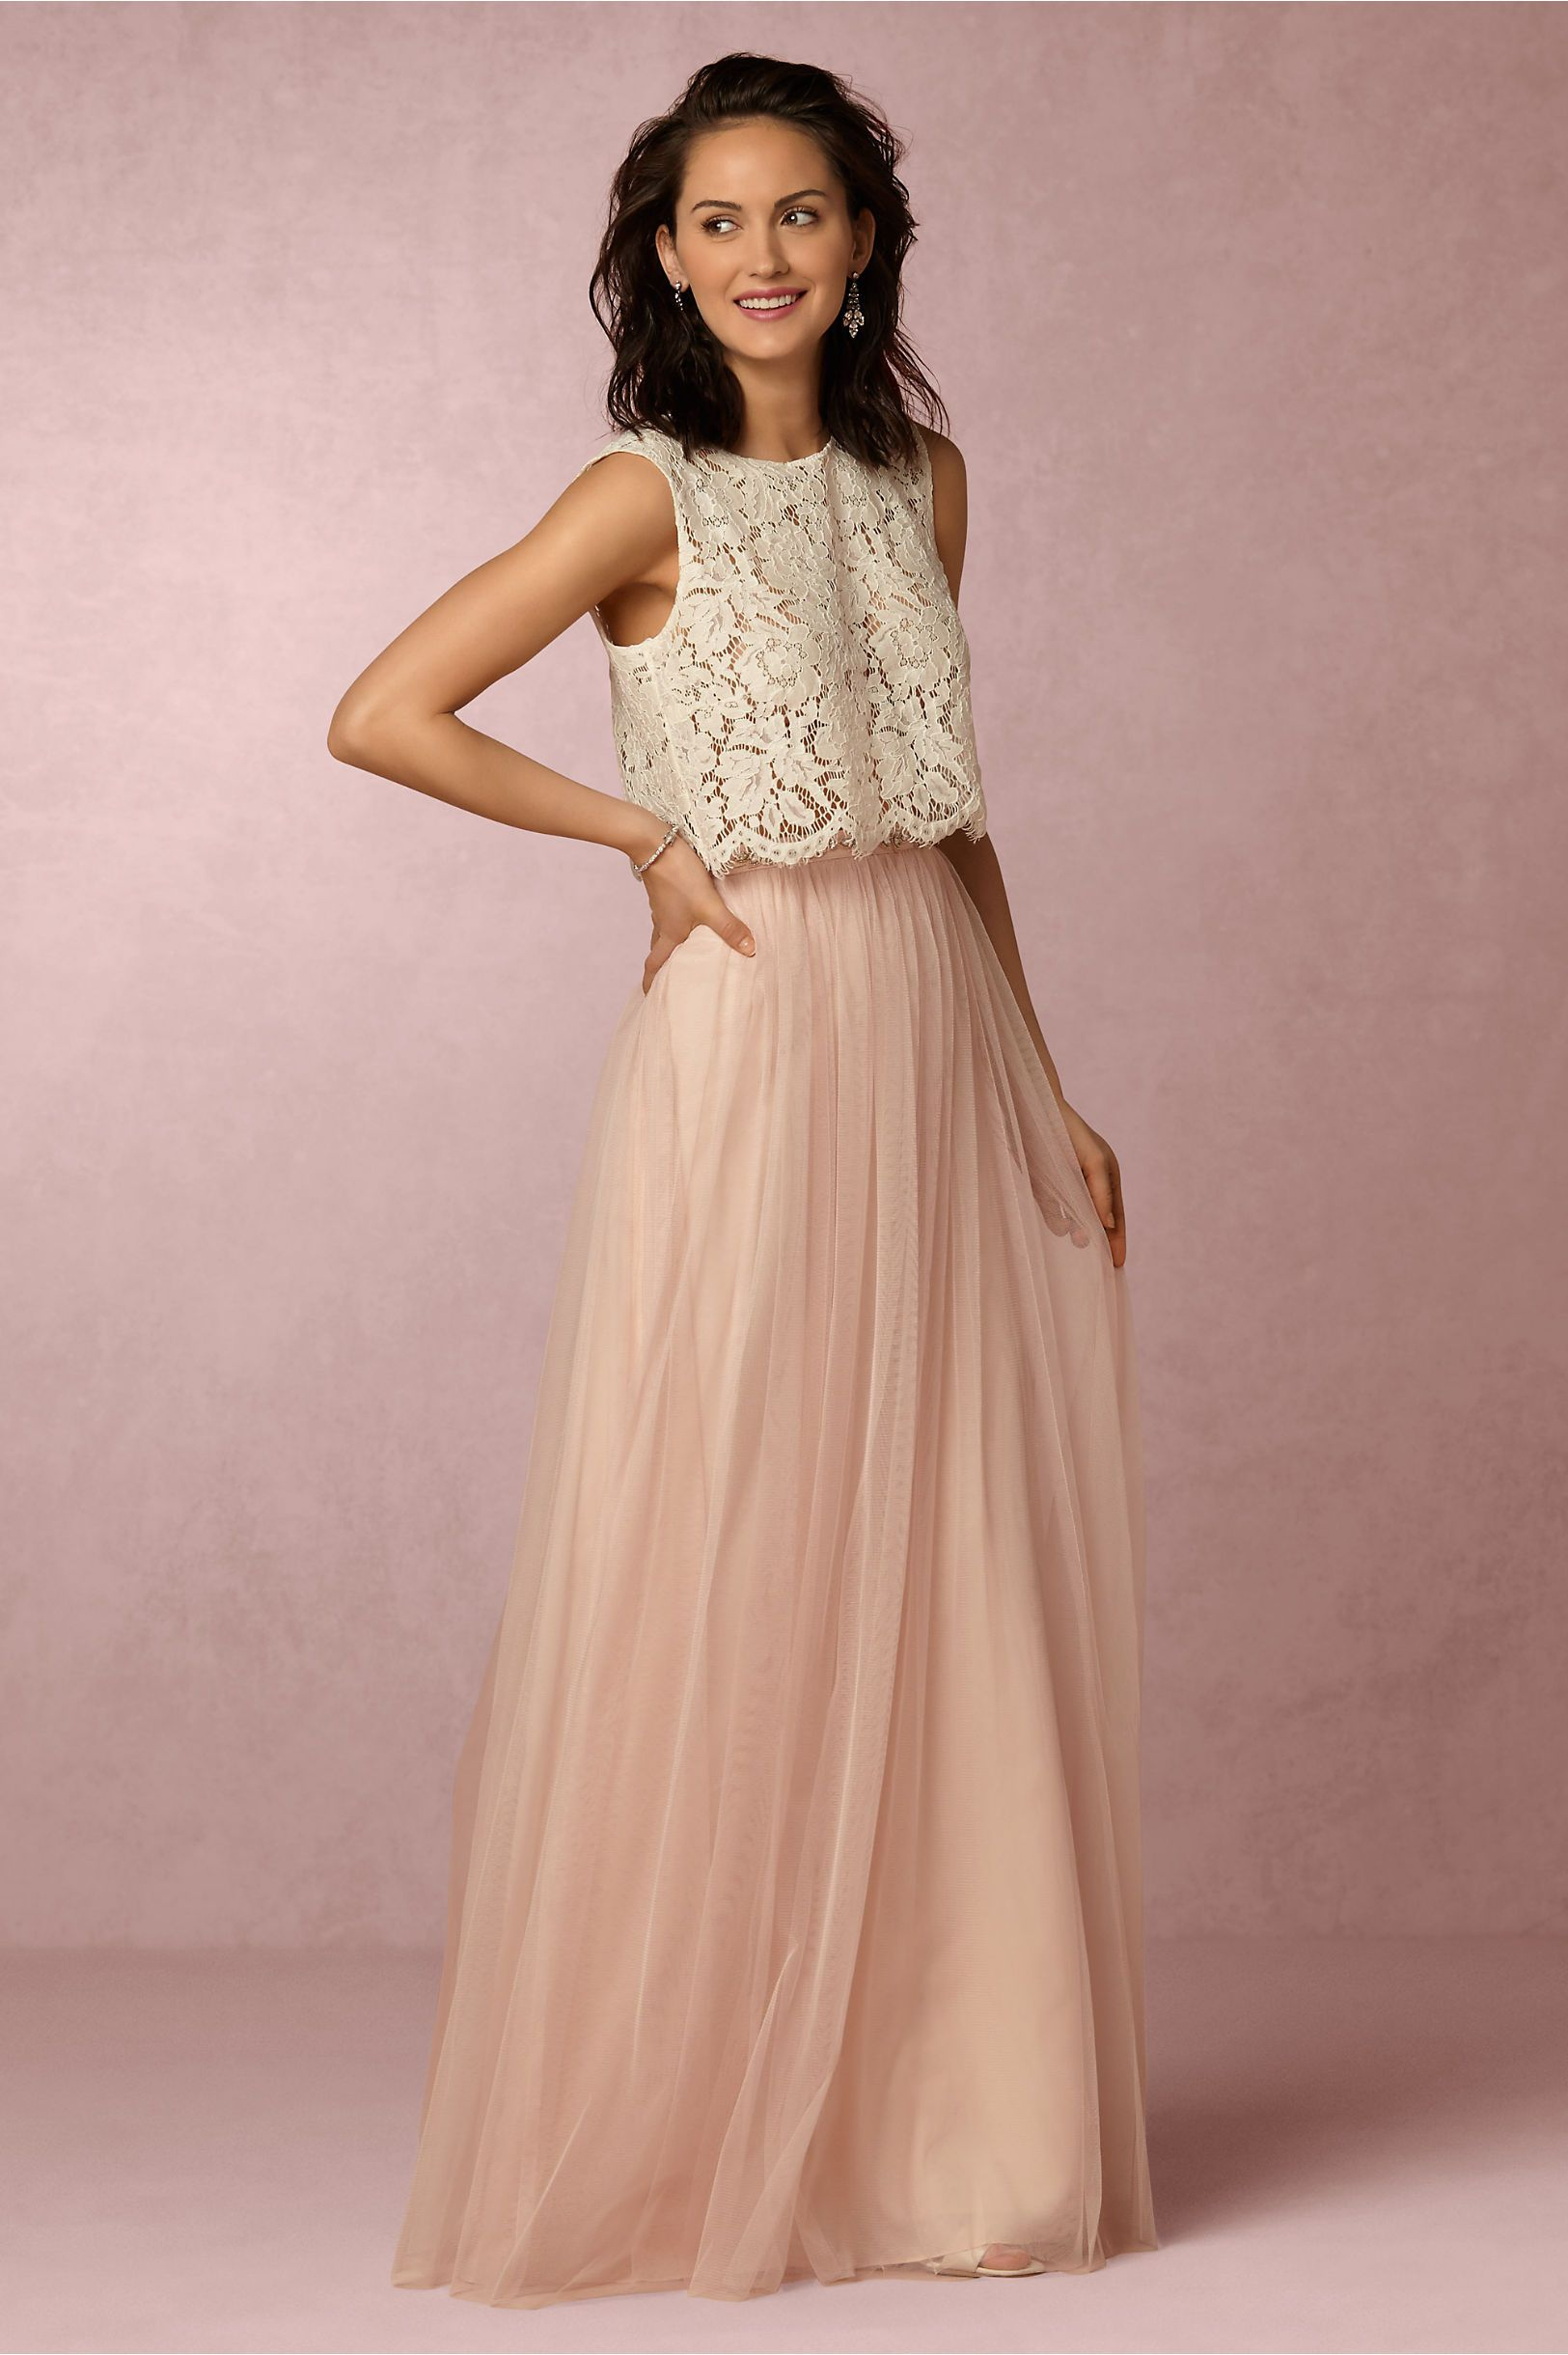 Bhldn cleo top louise tulle skirt in bridesmaids bridesmaid bhldn cleo top louise tulle skirt in bridesmaids bridesmaid dresses at bhldn ombrellifo Image collections